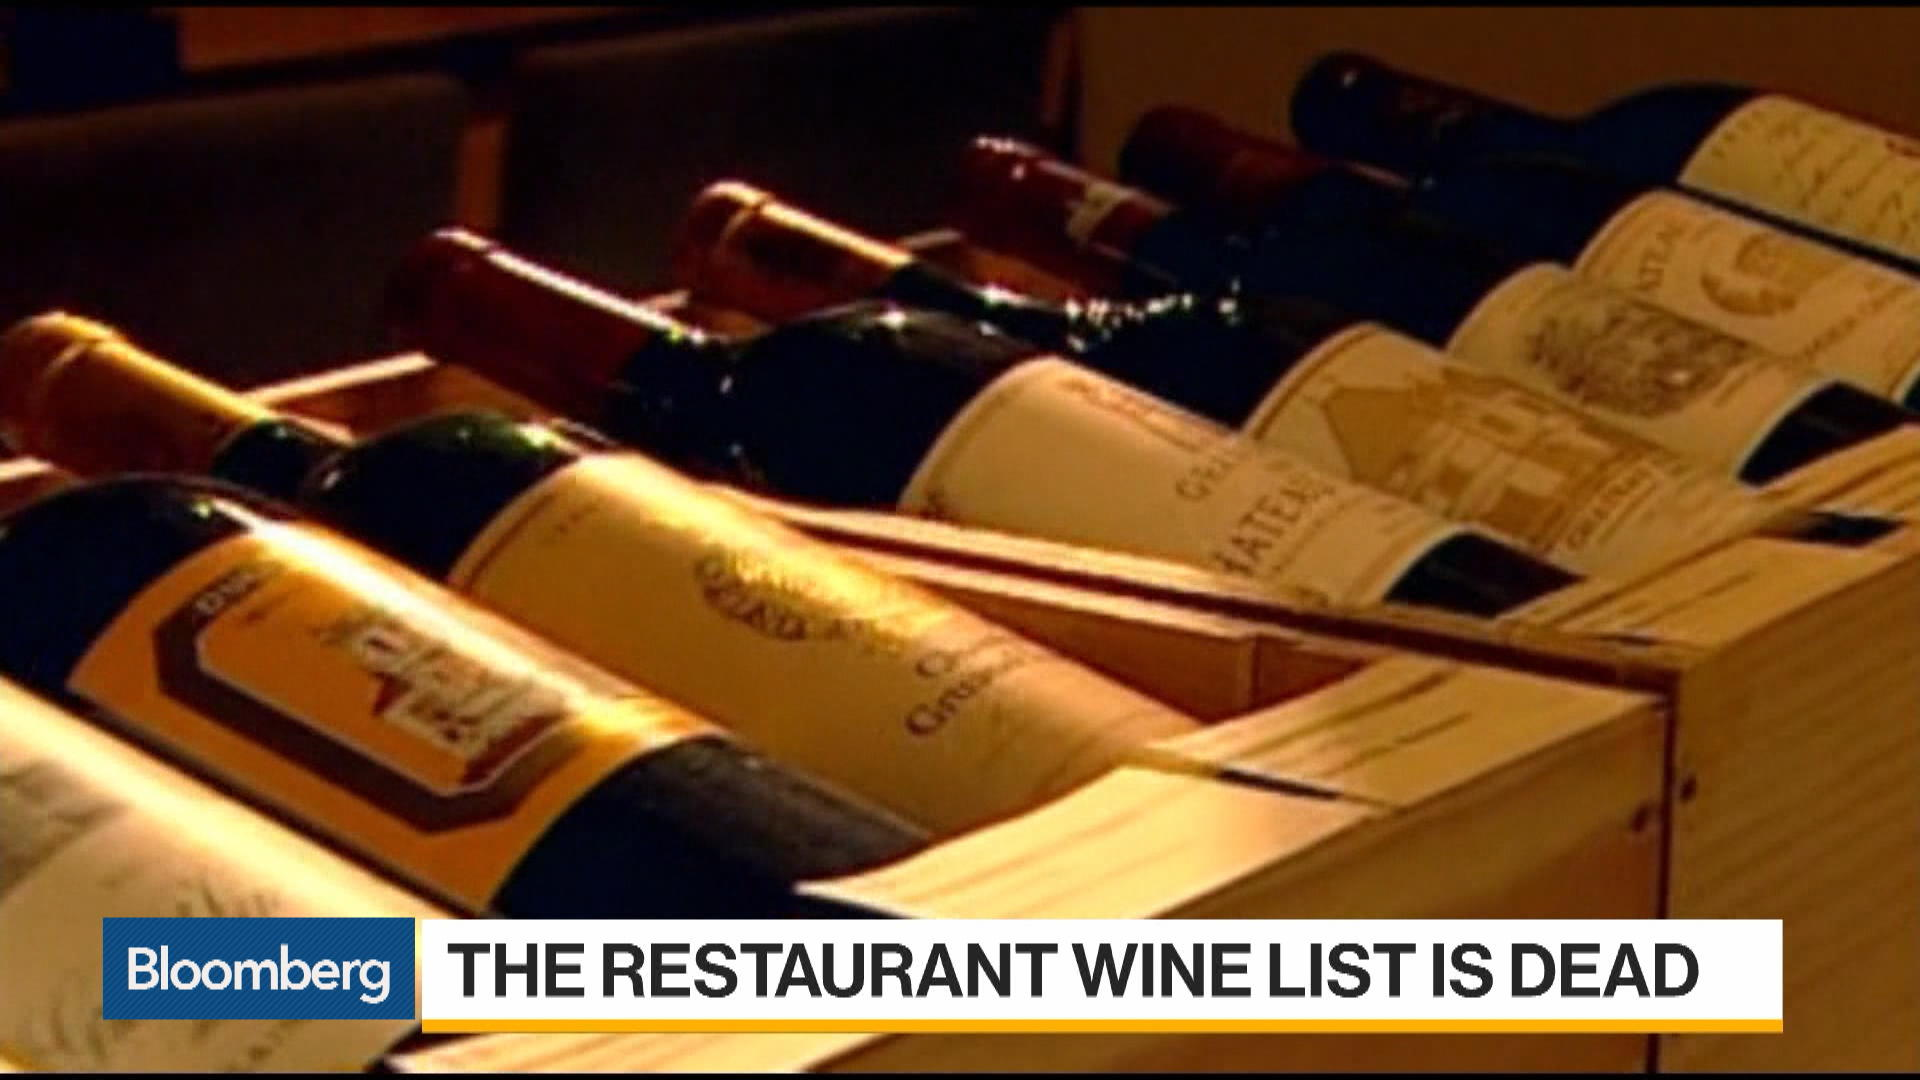 Is the Restaurant Wine List Dead?